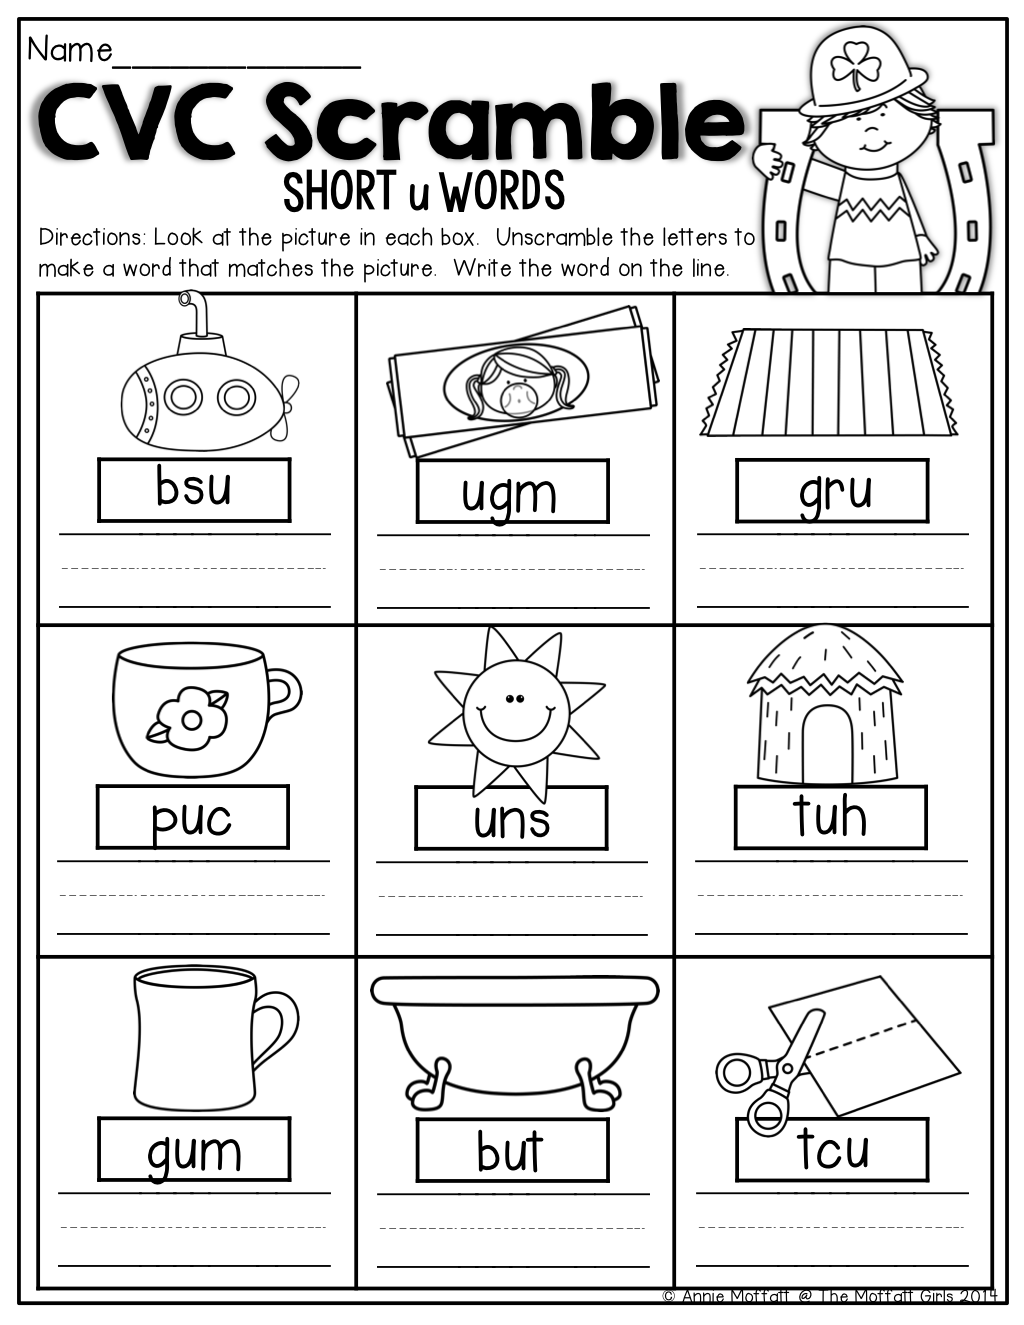 cvc scramble unscramble the cvc words to match the picture kindergarten activities. Black Bedroom Furniture Sets. Home Design Ideas